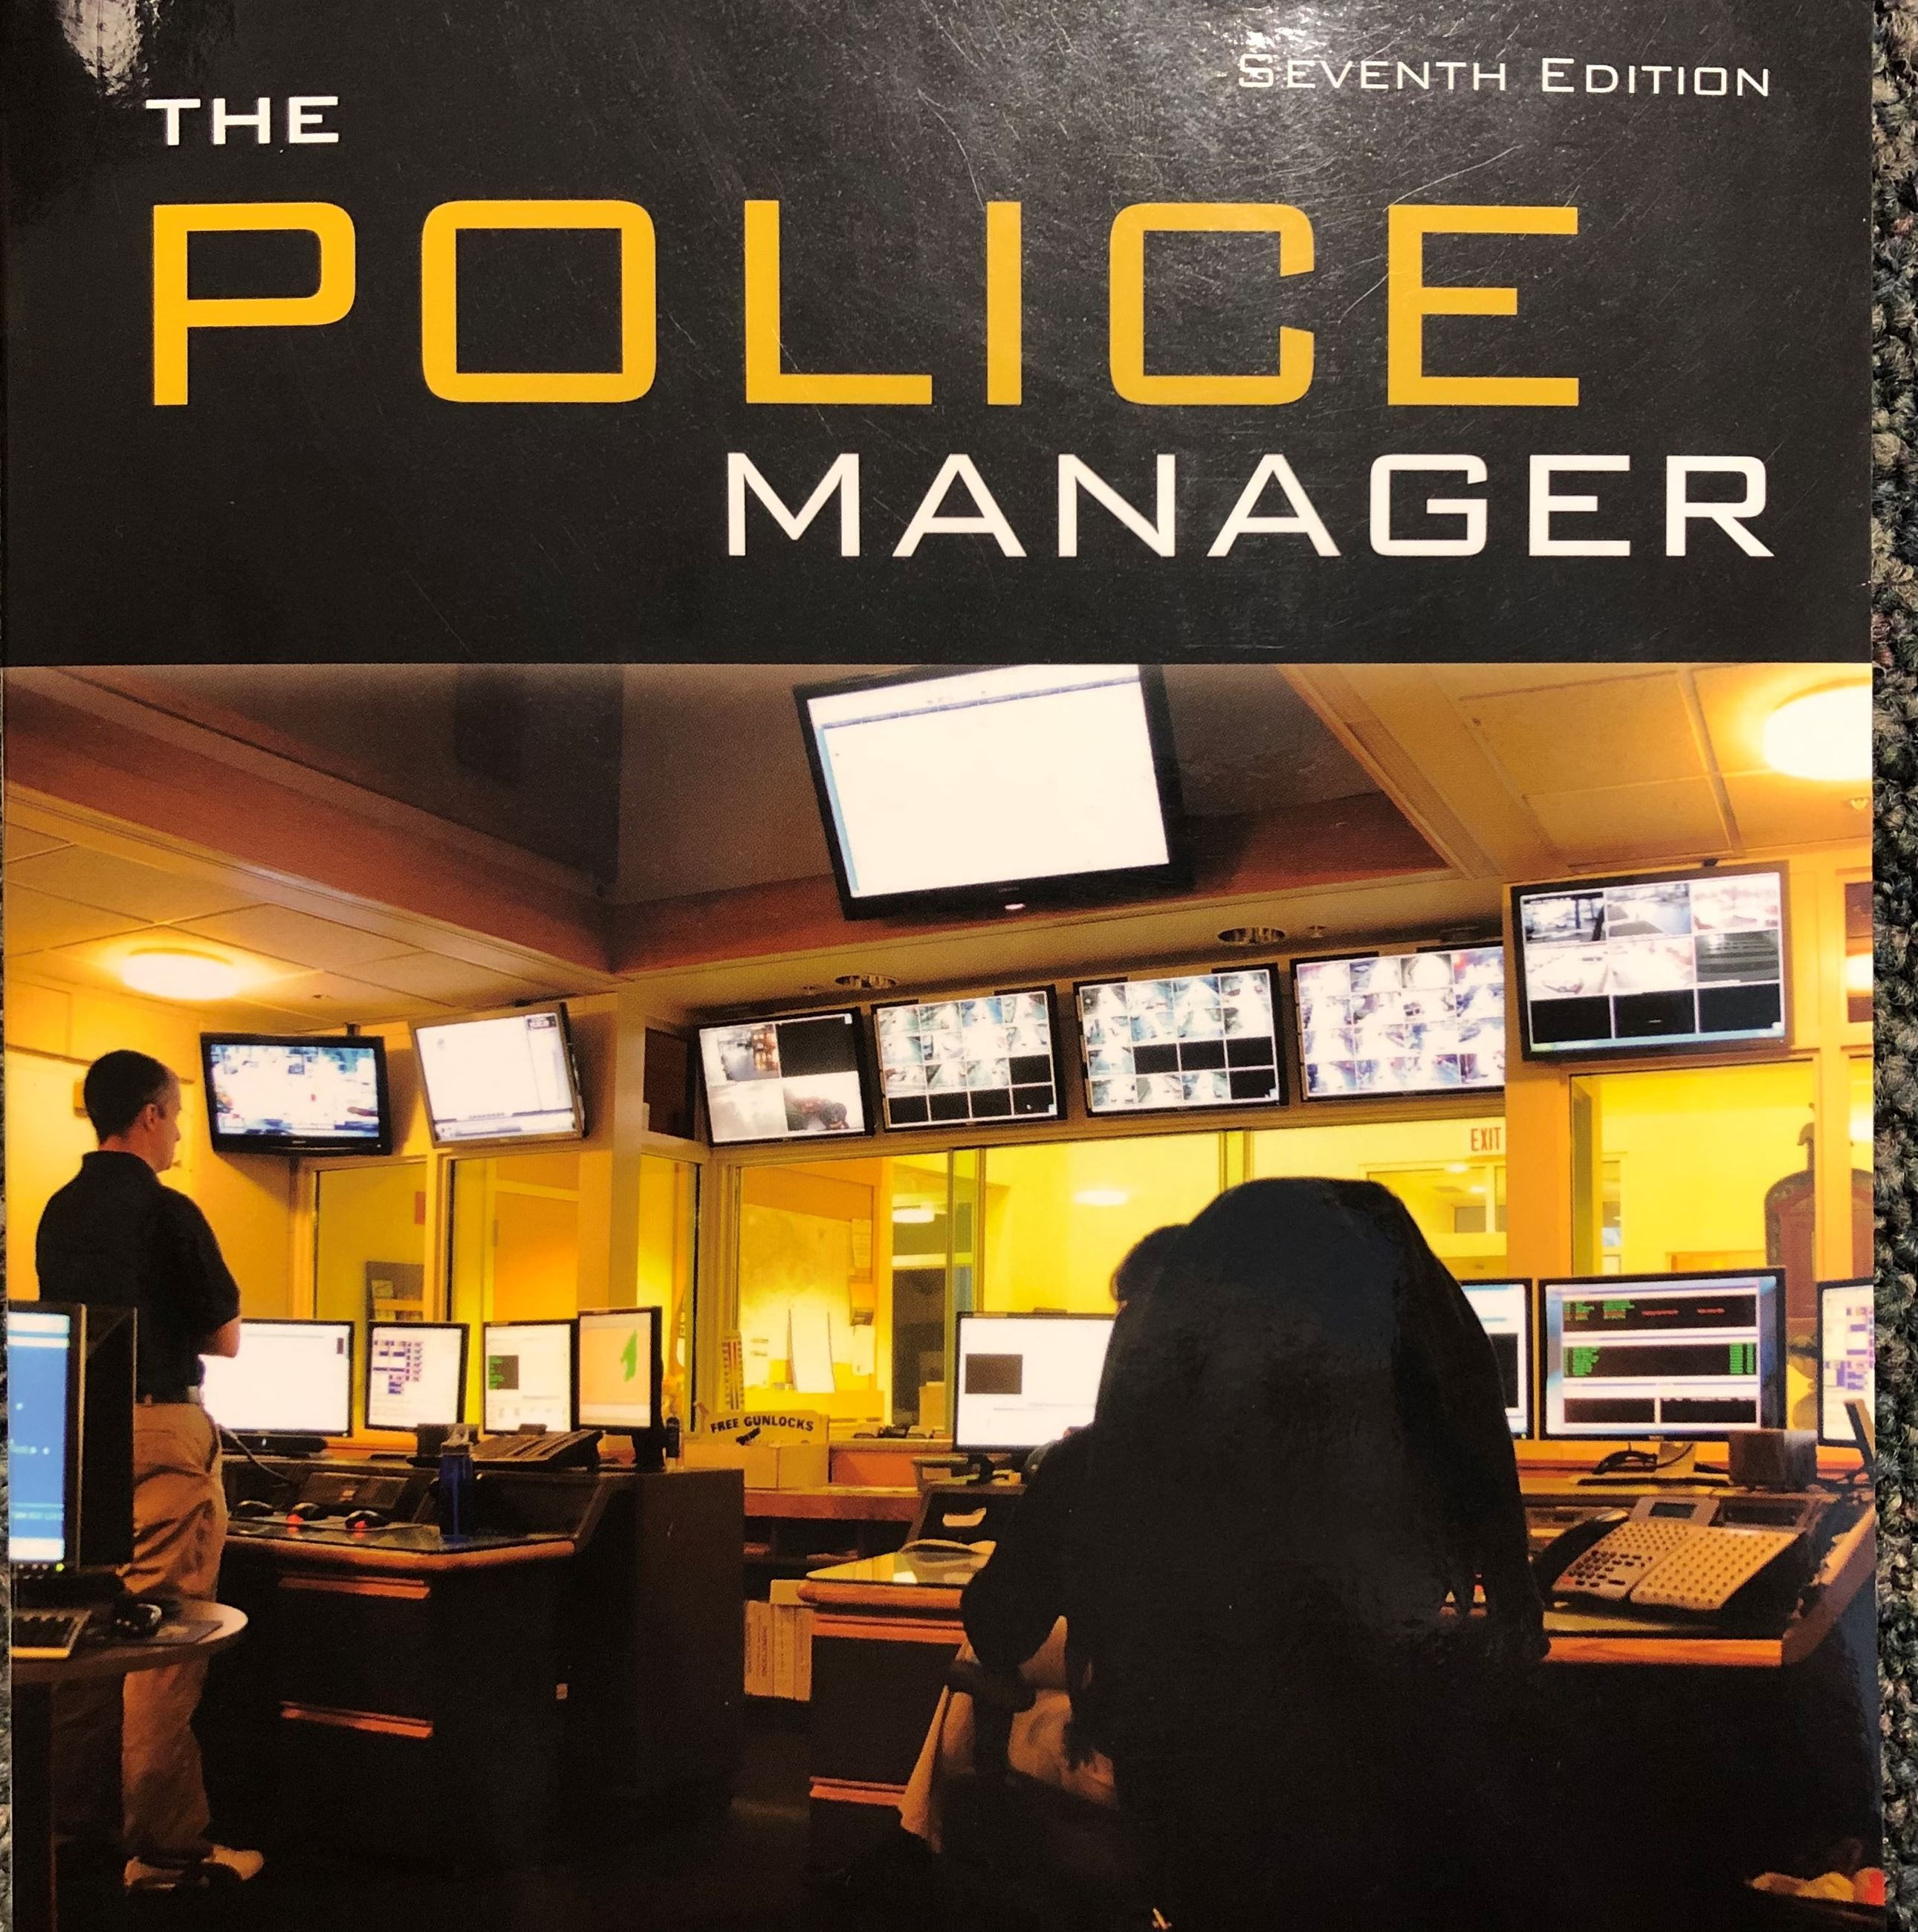 Wellesley Dispatchers on the front cover of Police Manager